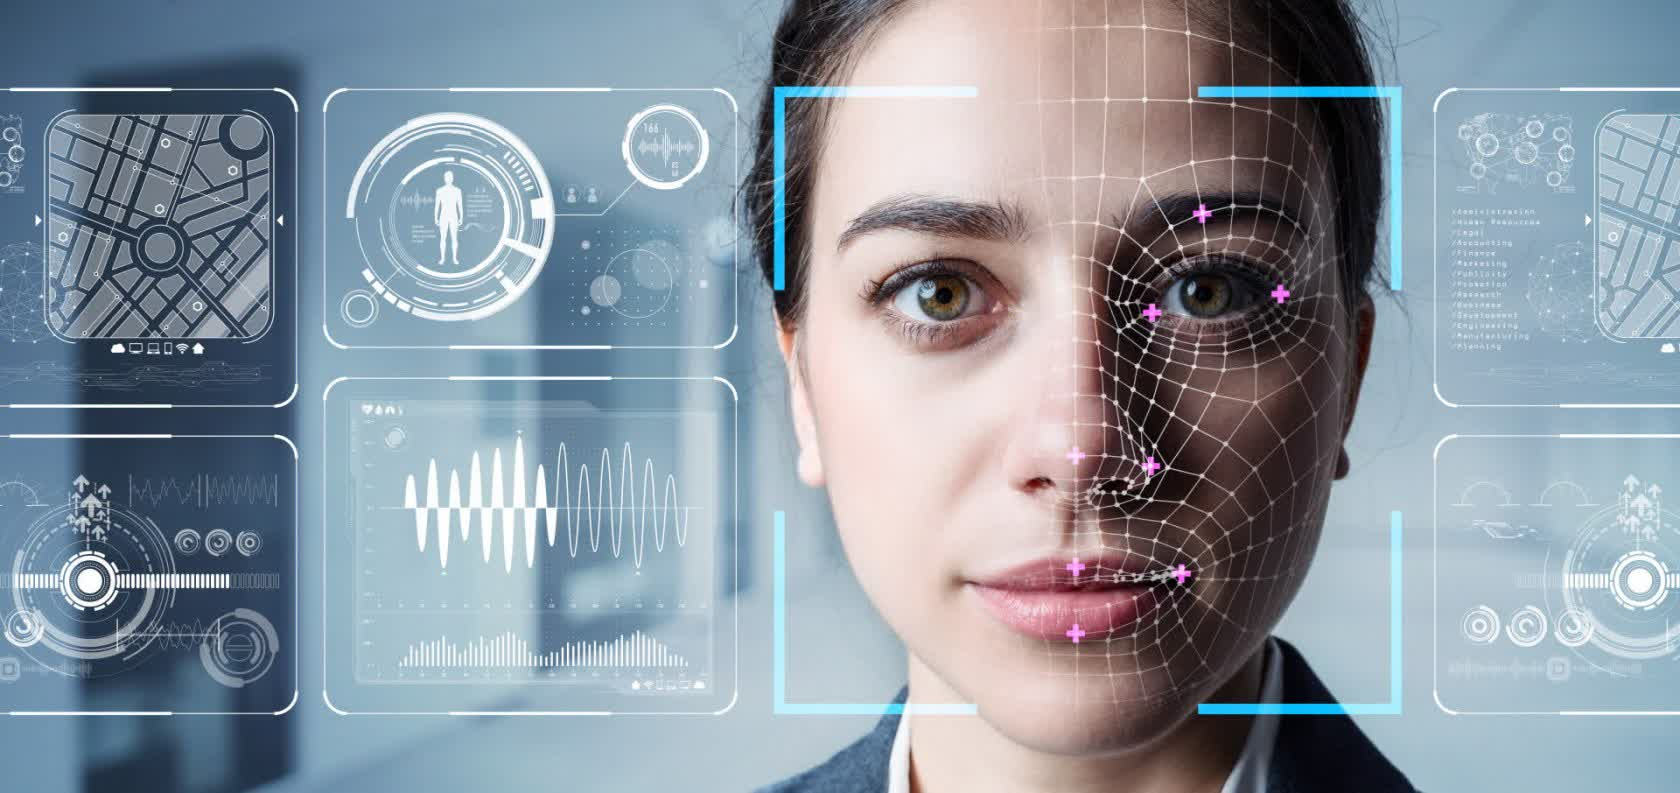 Los Angeles Police Department bans the use of third-party facial recognition technology